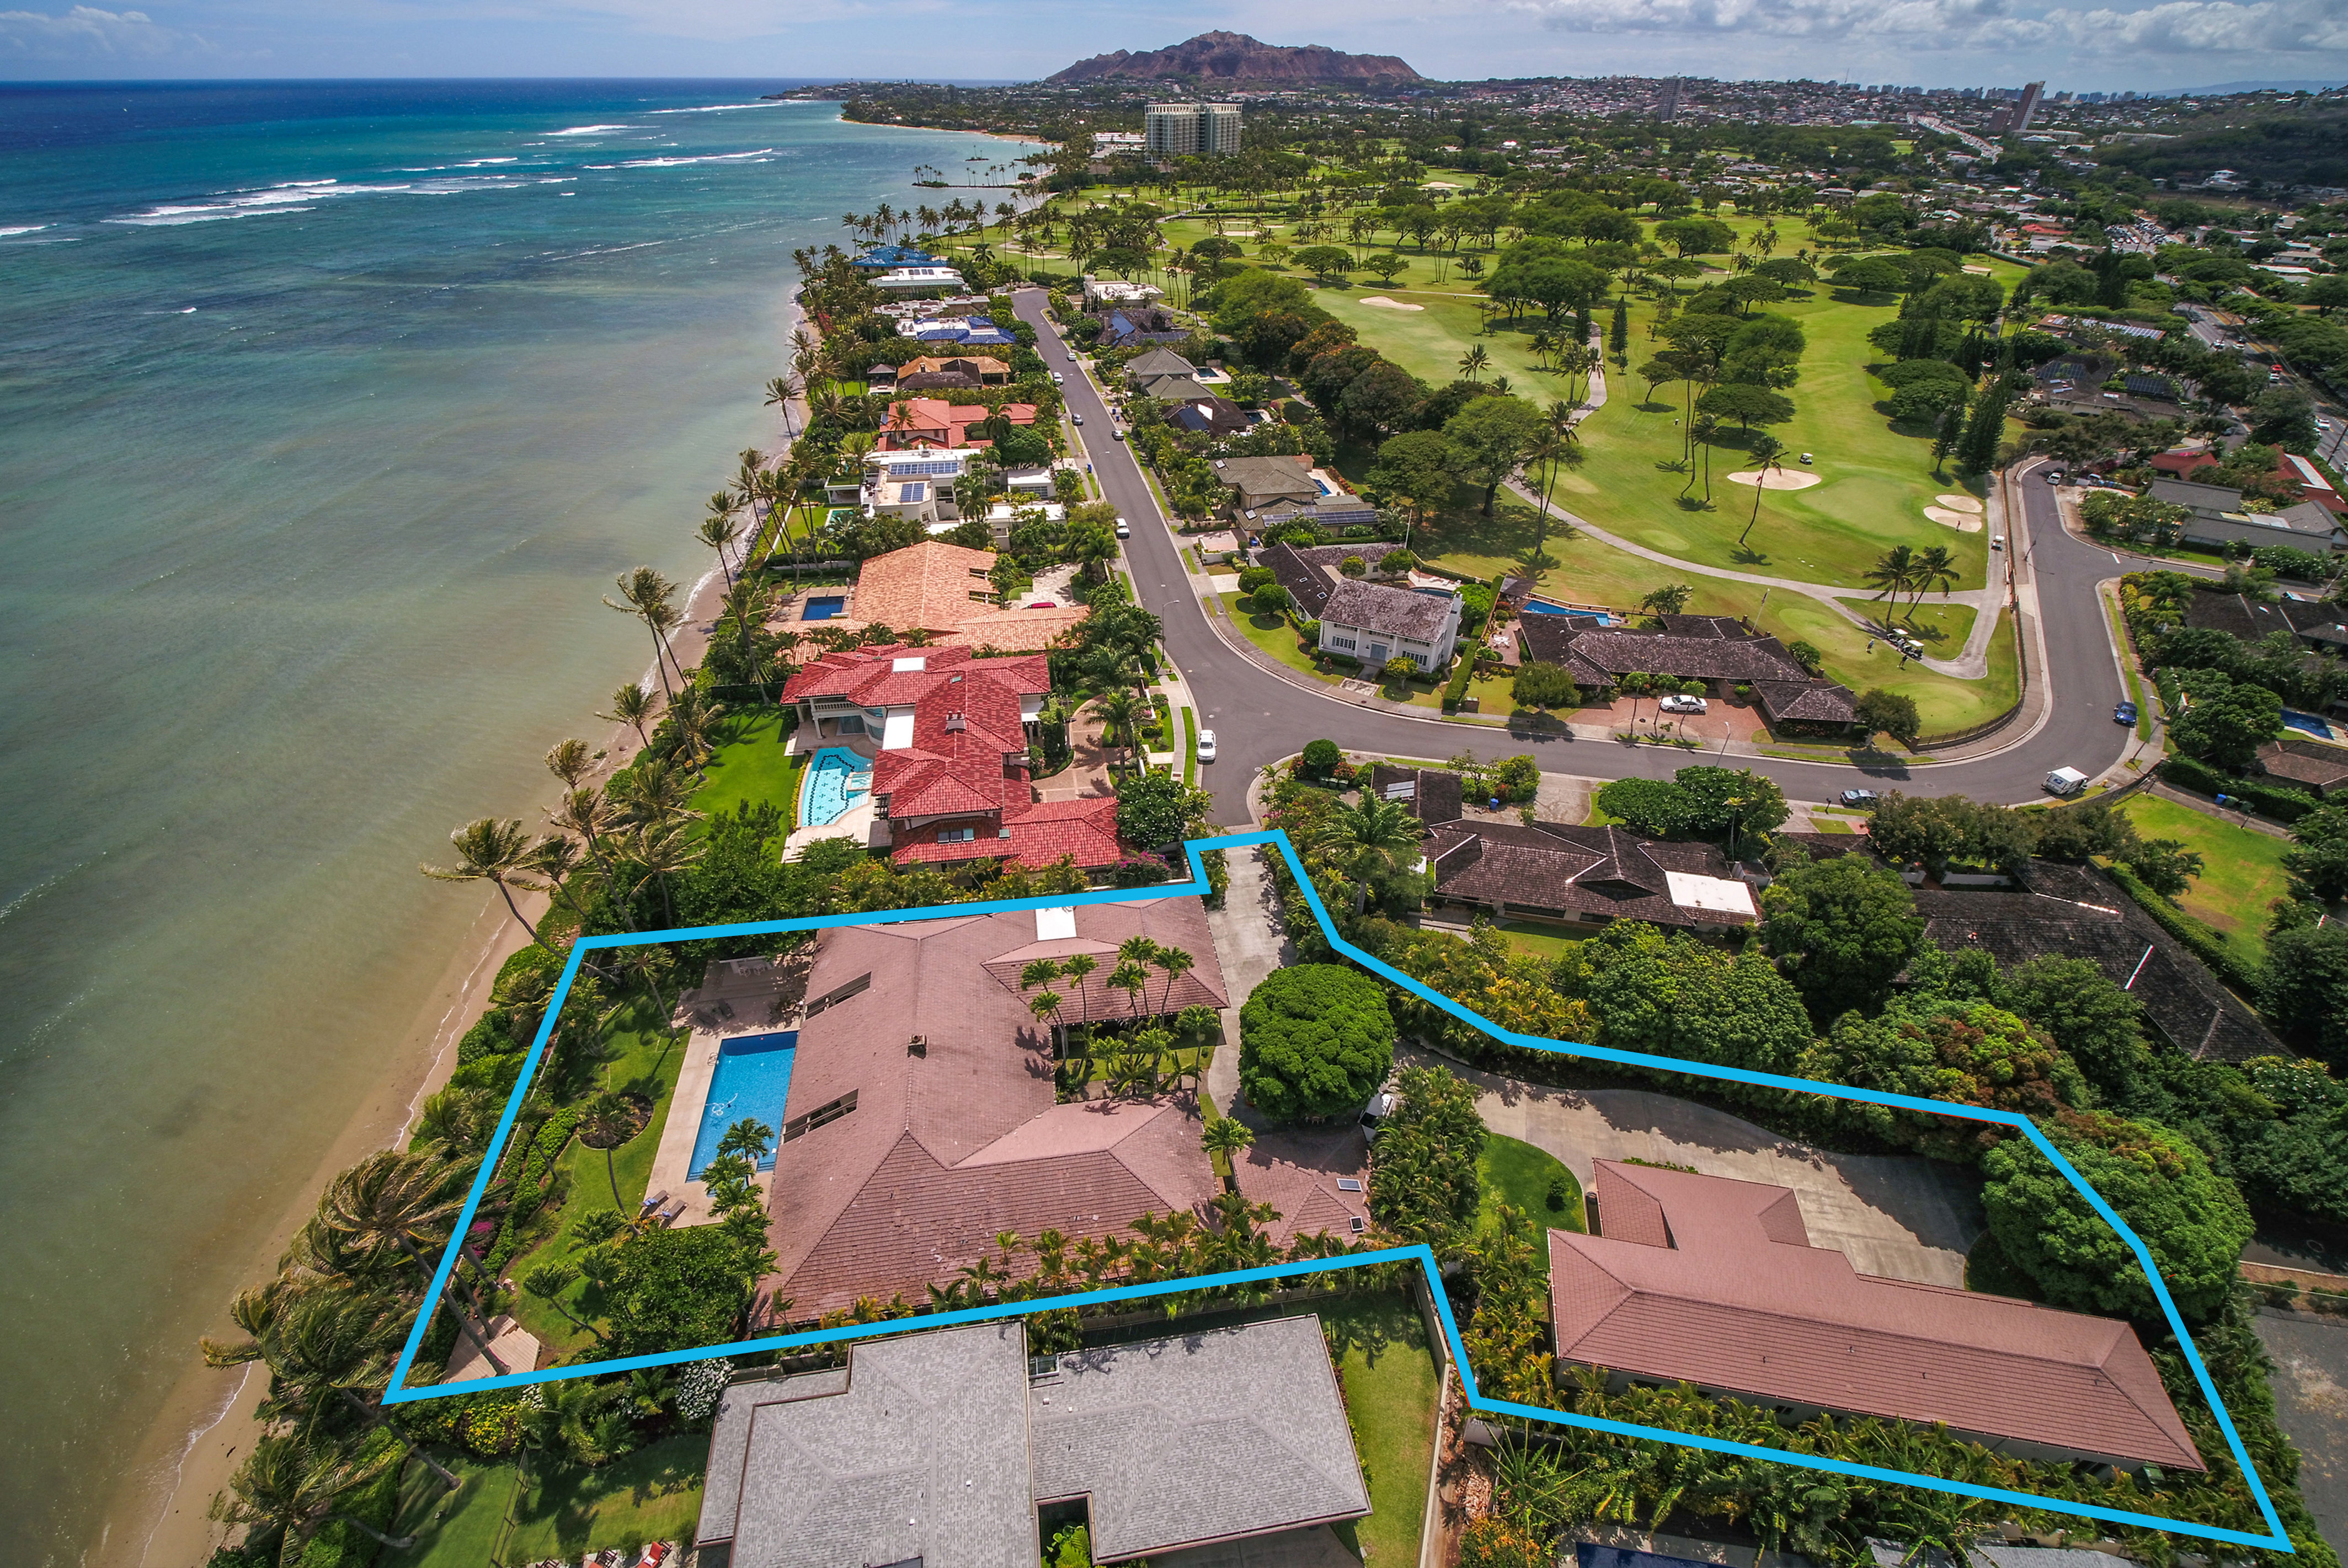 Hawaii - Real Estate and Apartments for Sale | Christie's ...